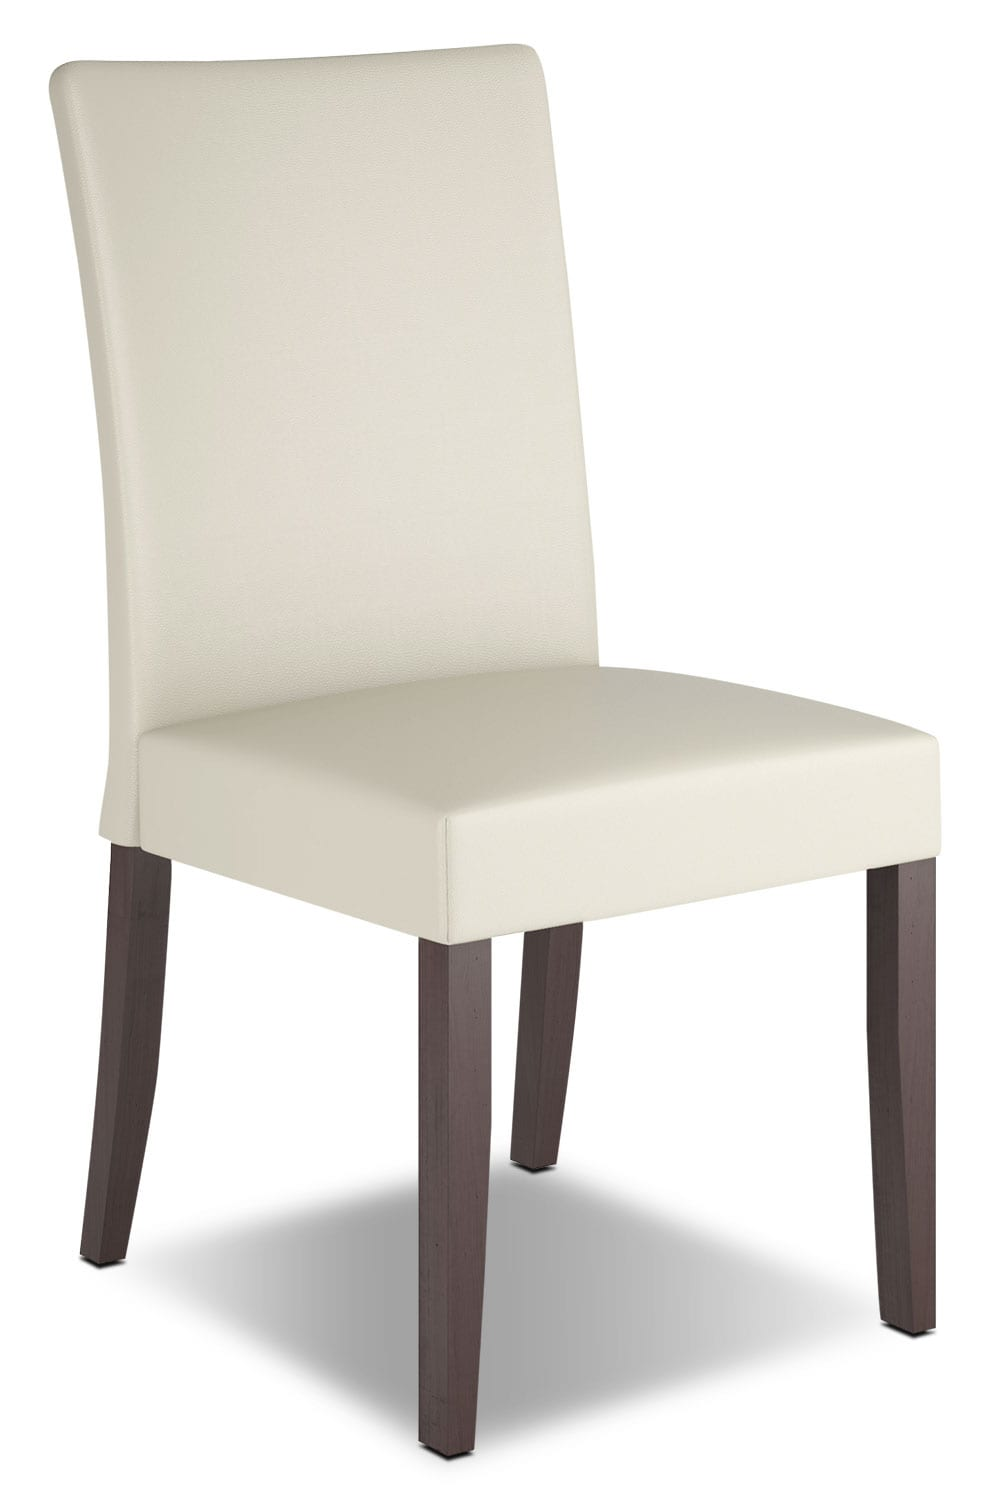 Atwood faux leather dining chair cream the brick